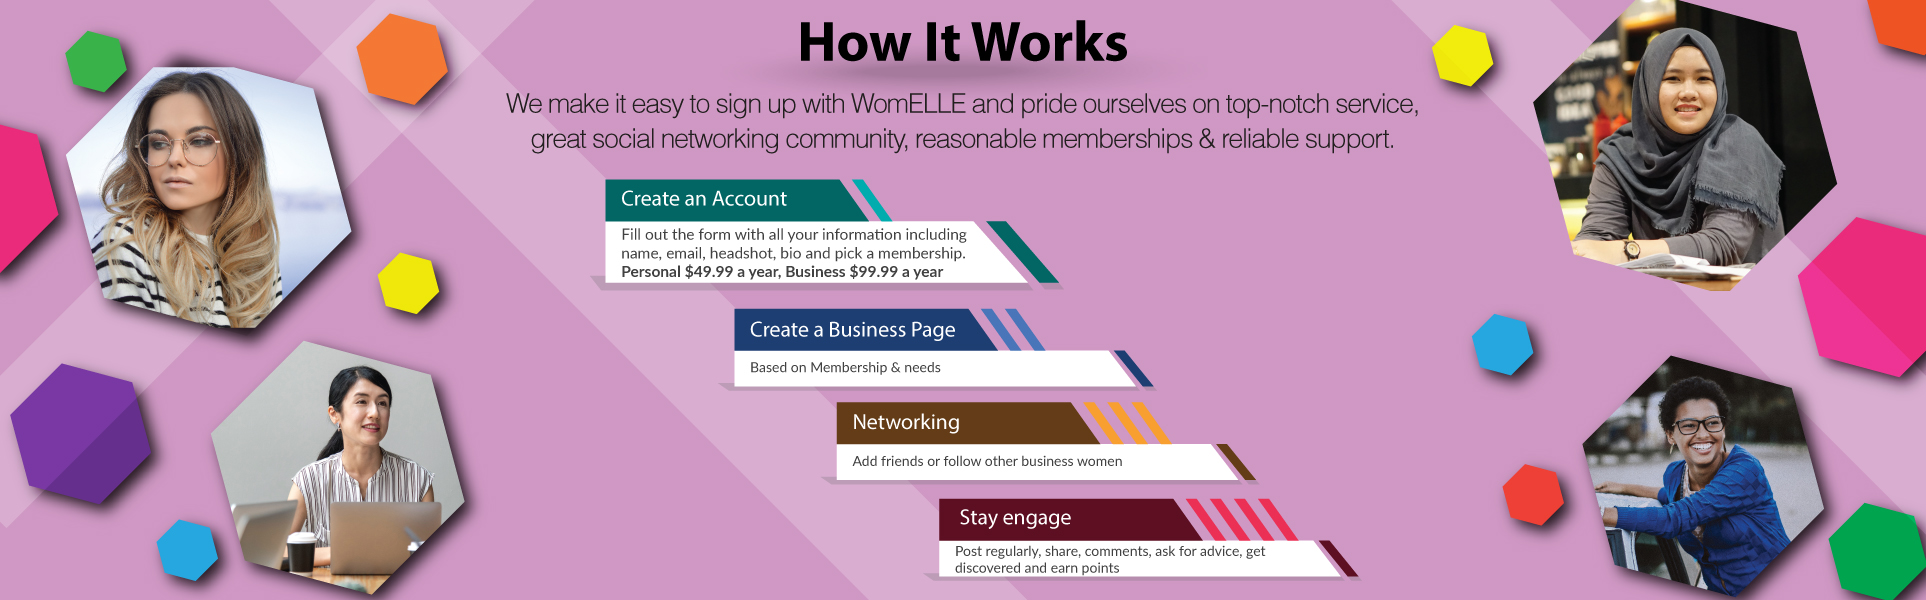 Womelle Community (How It Works)